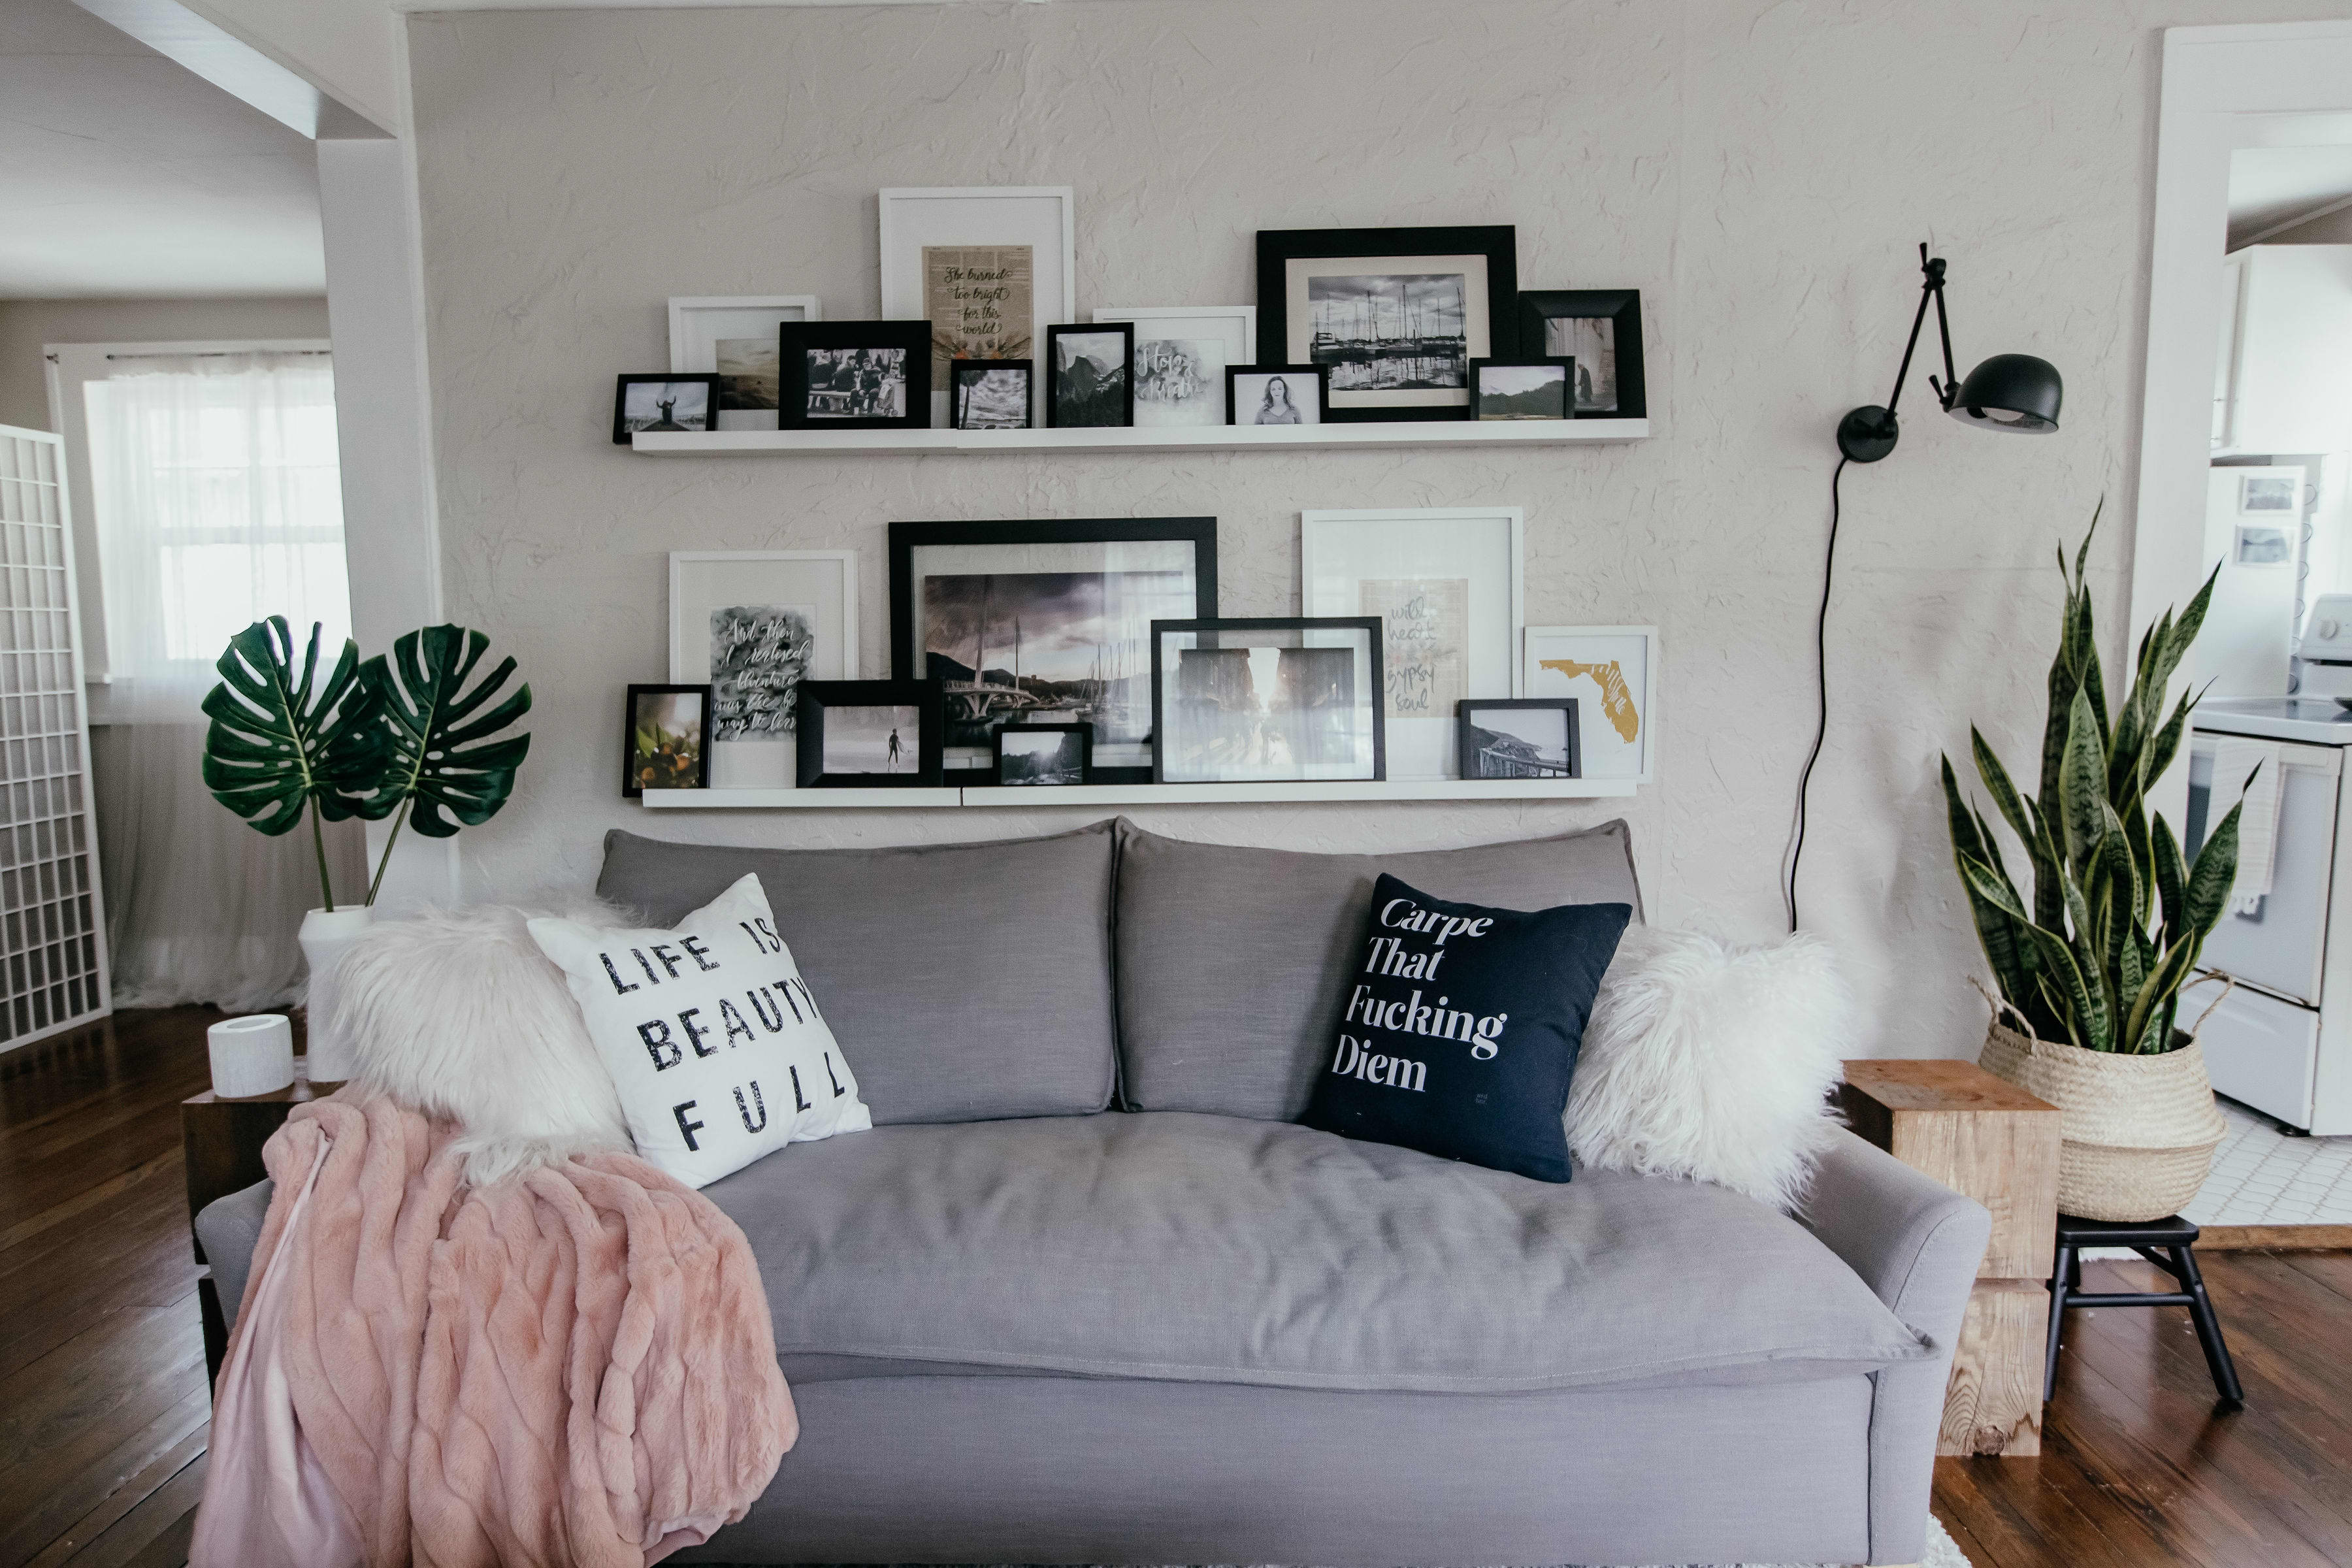 Small Space Decor Ideas in a Minimal Garage Apartment ...